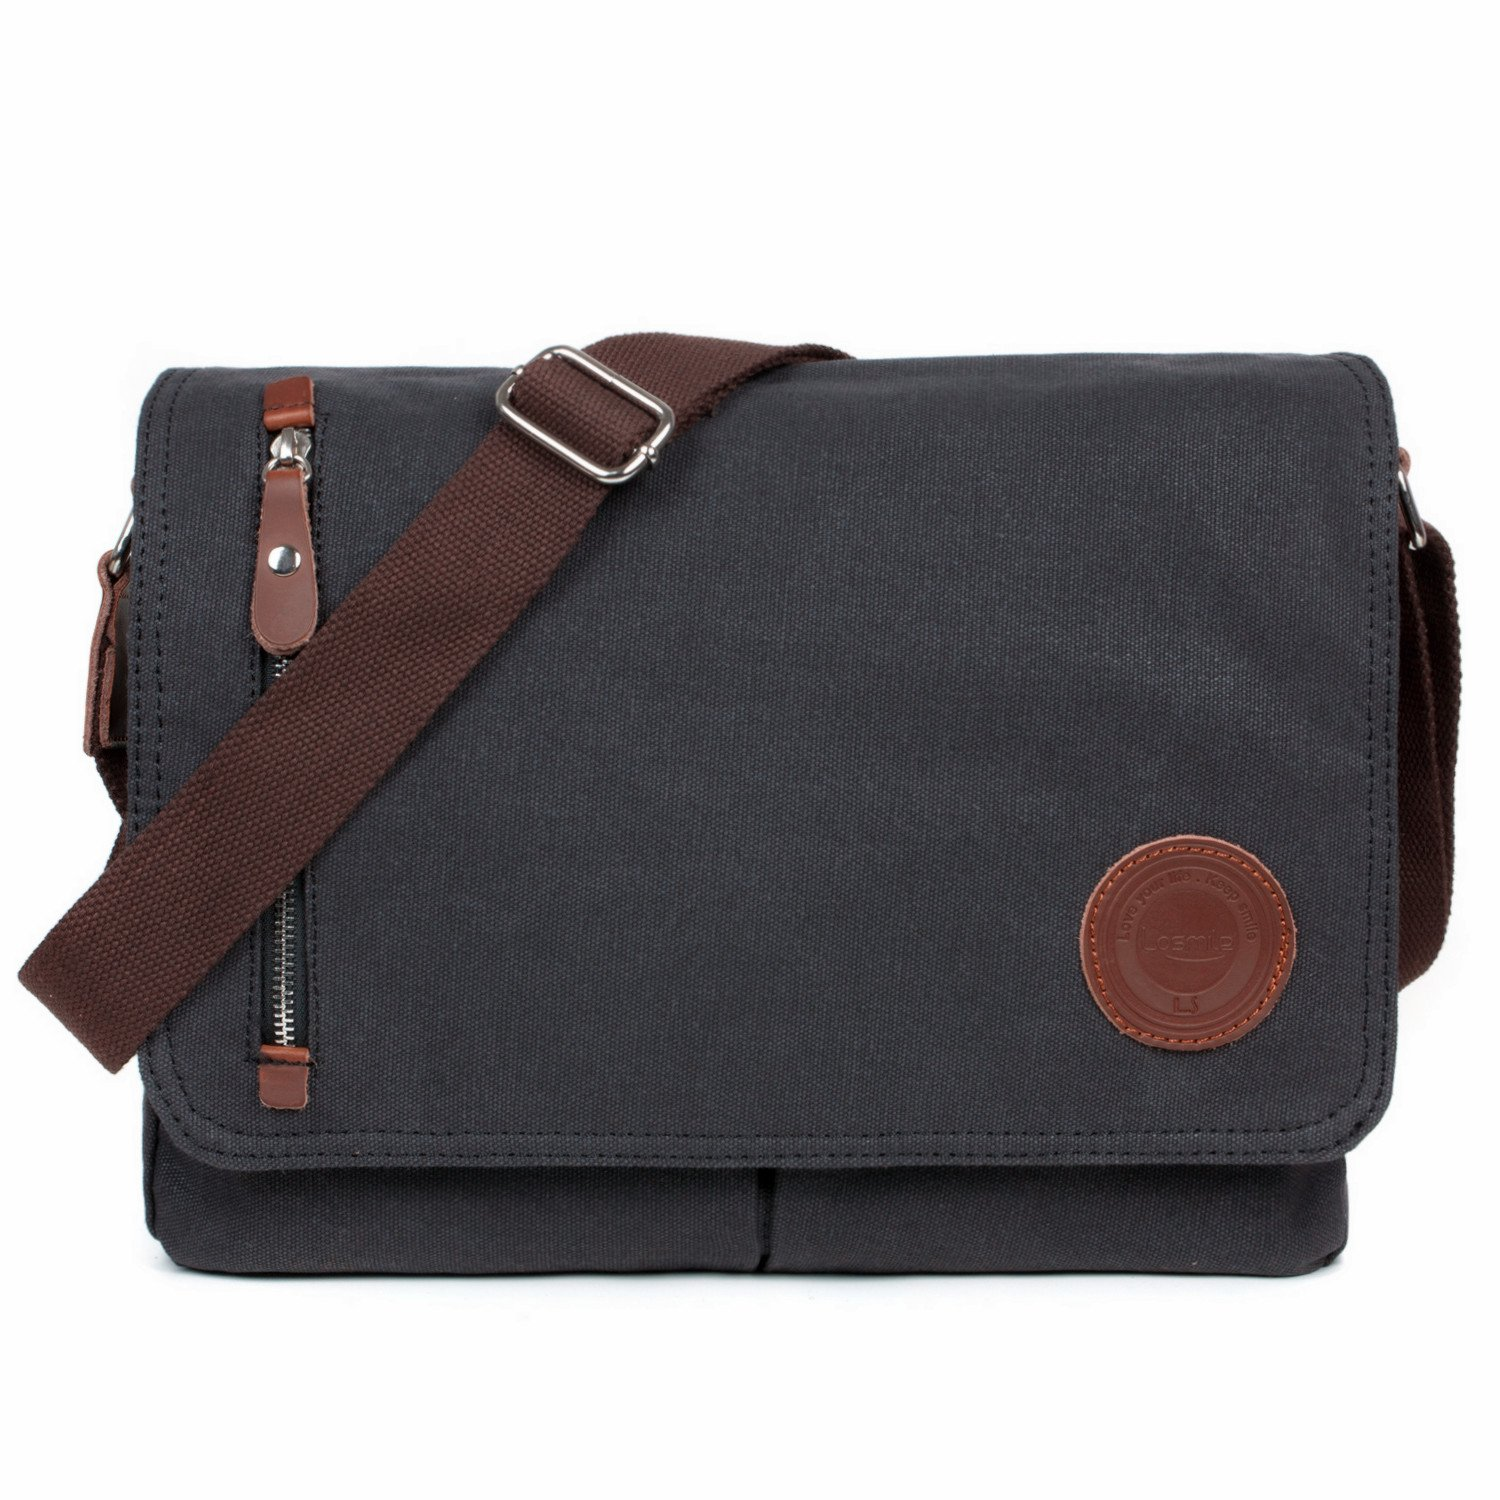 22cee4cc2a62 LOSMILE Mens Canvas Messenger Shoulder Bag.